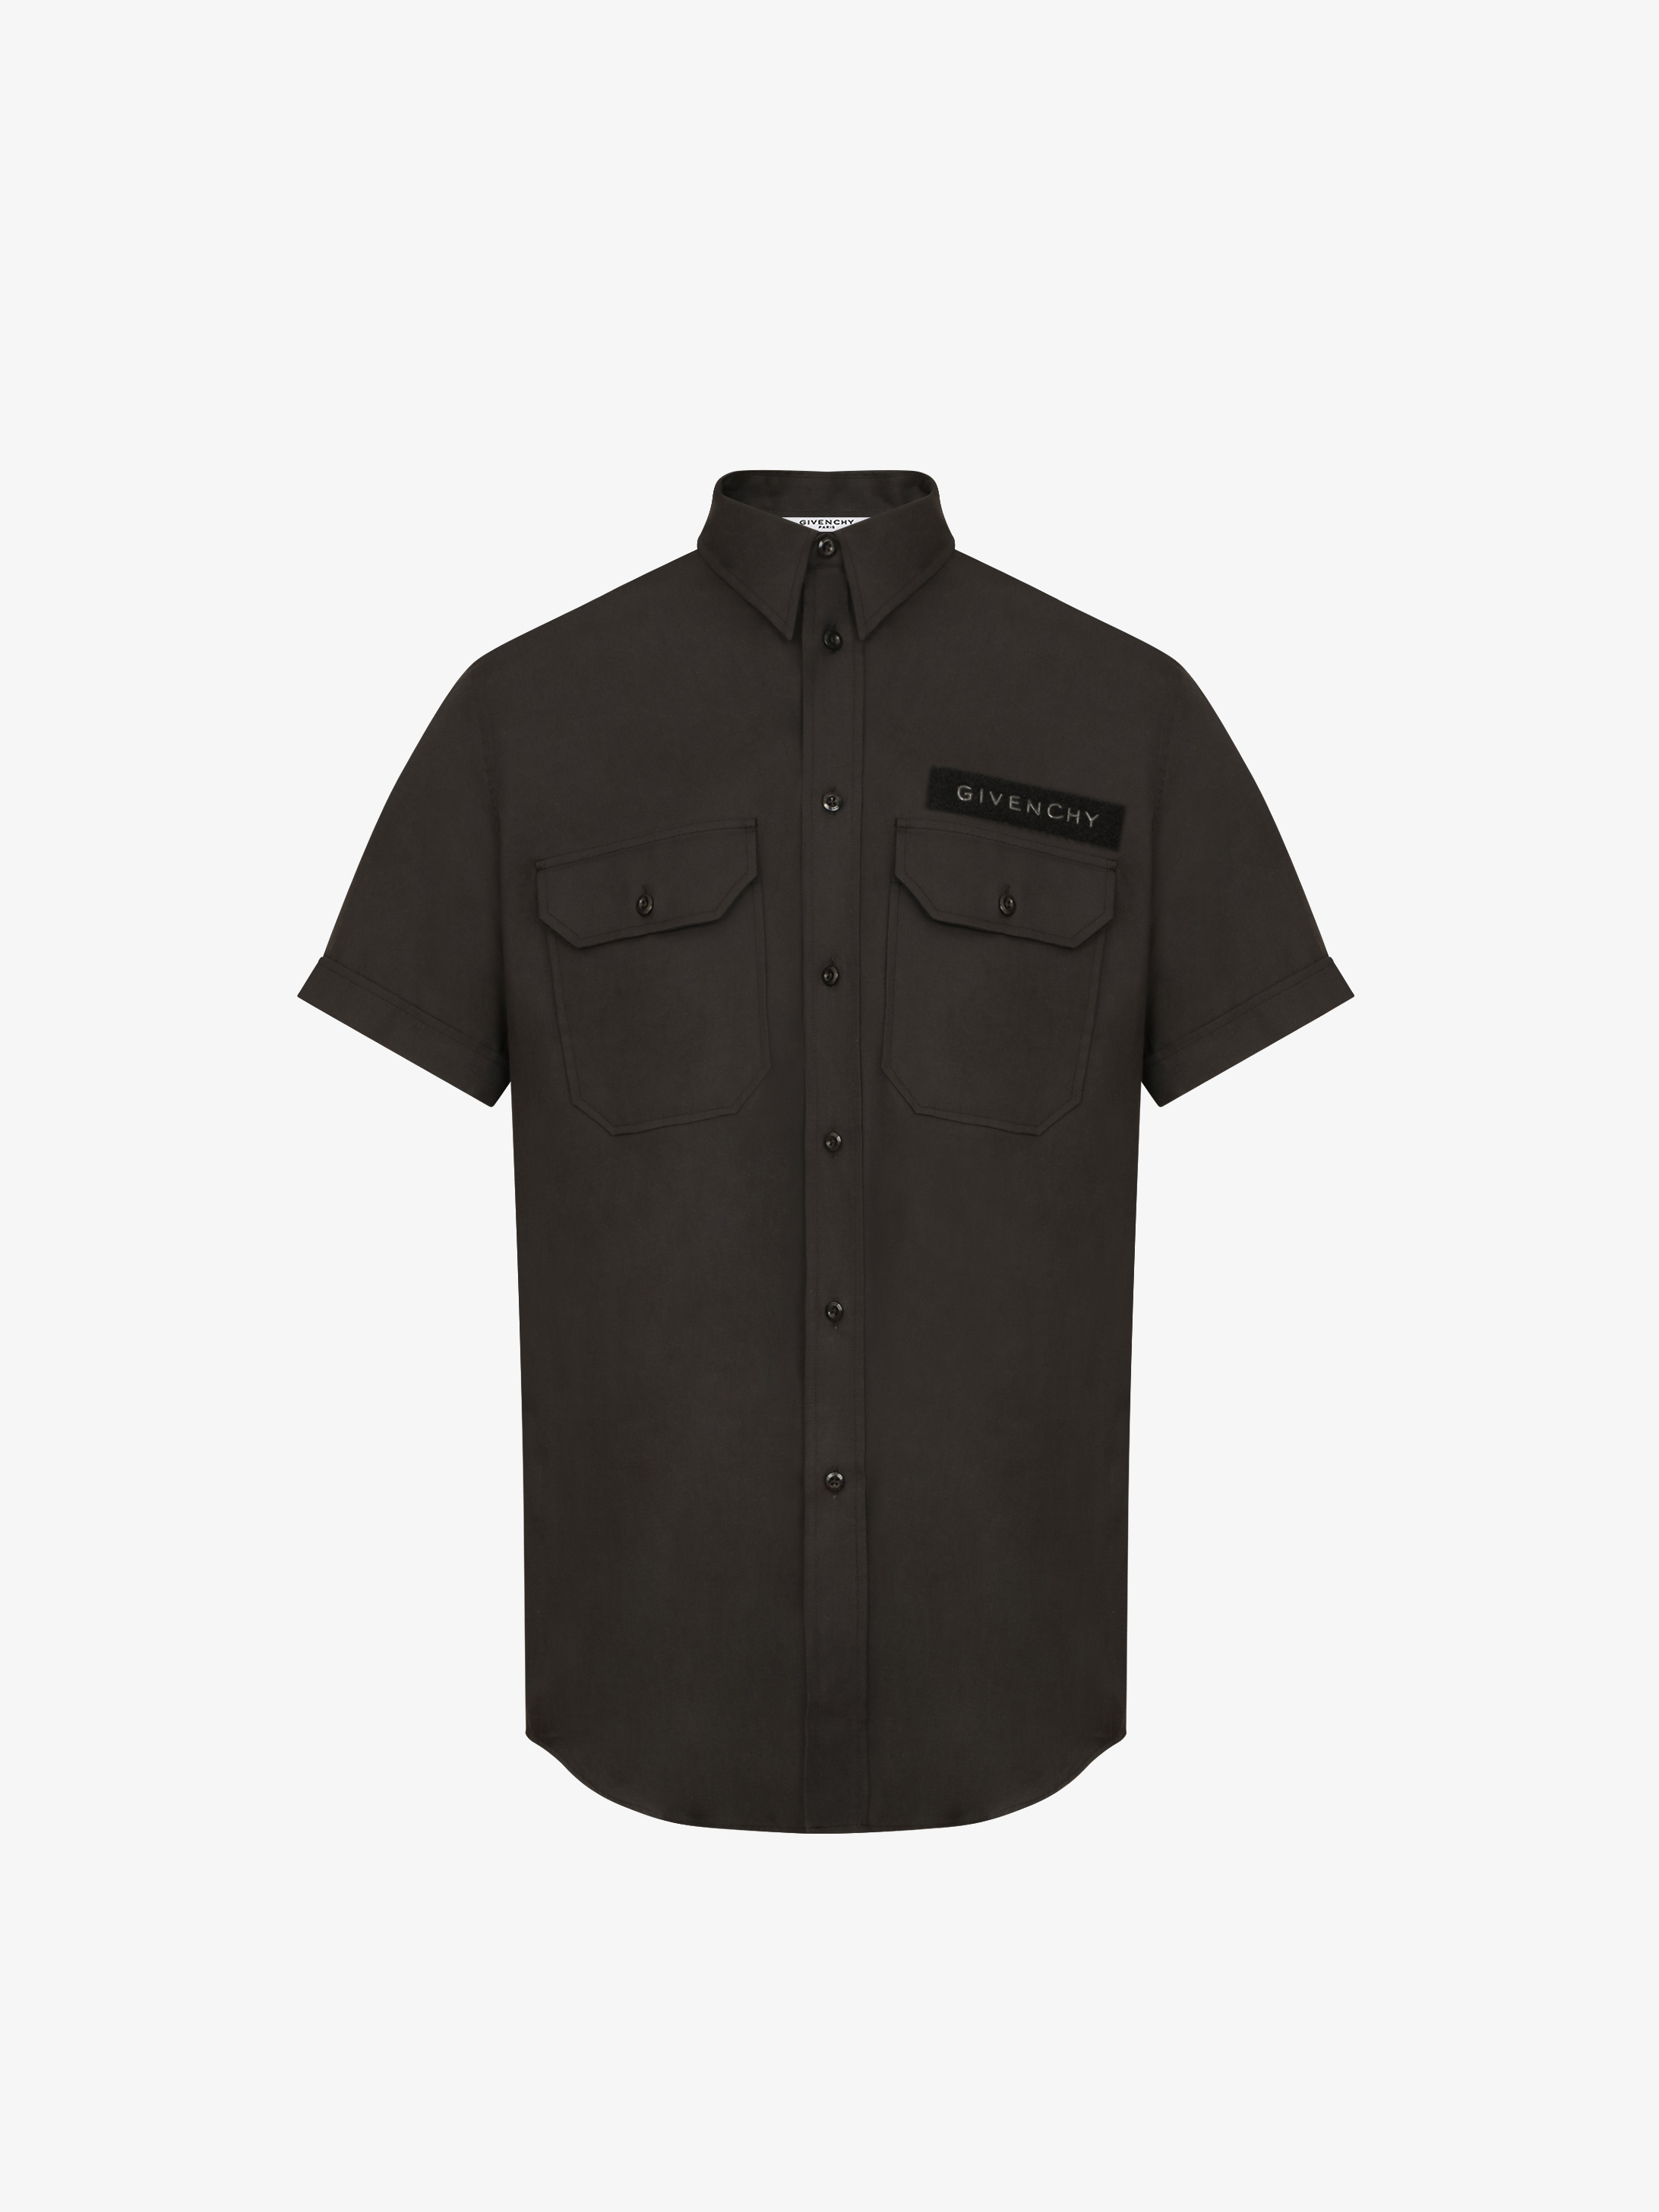 Shirt with GIVENCHY velcro patch